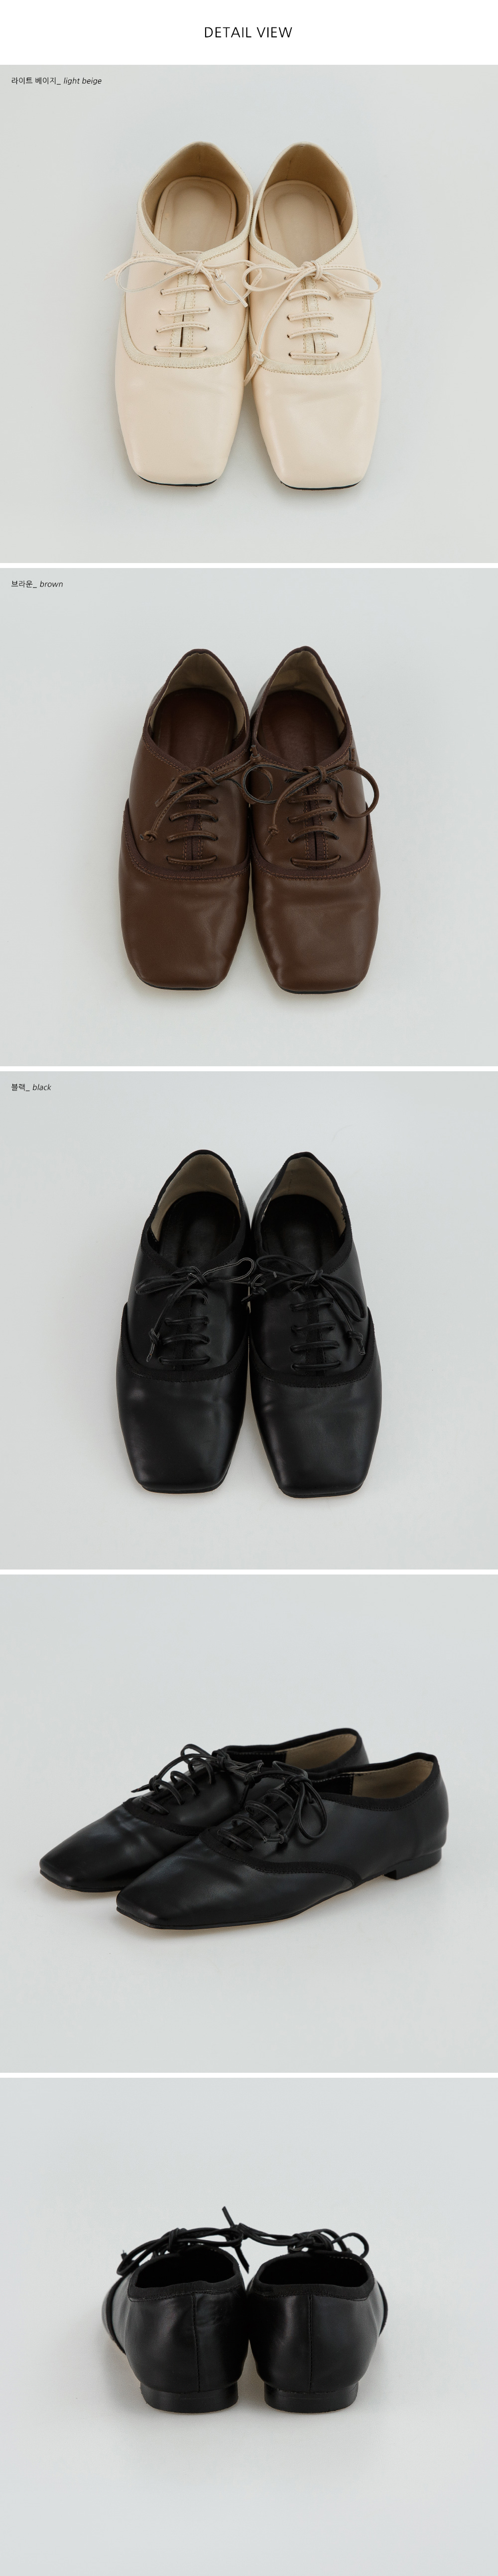 unique square line loafer